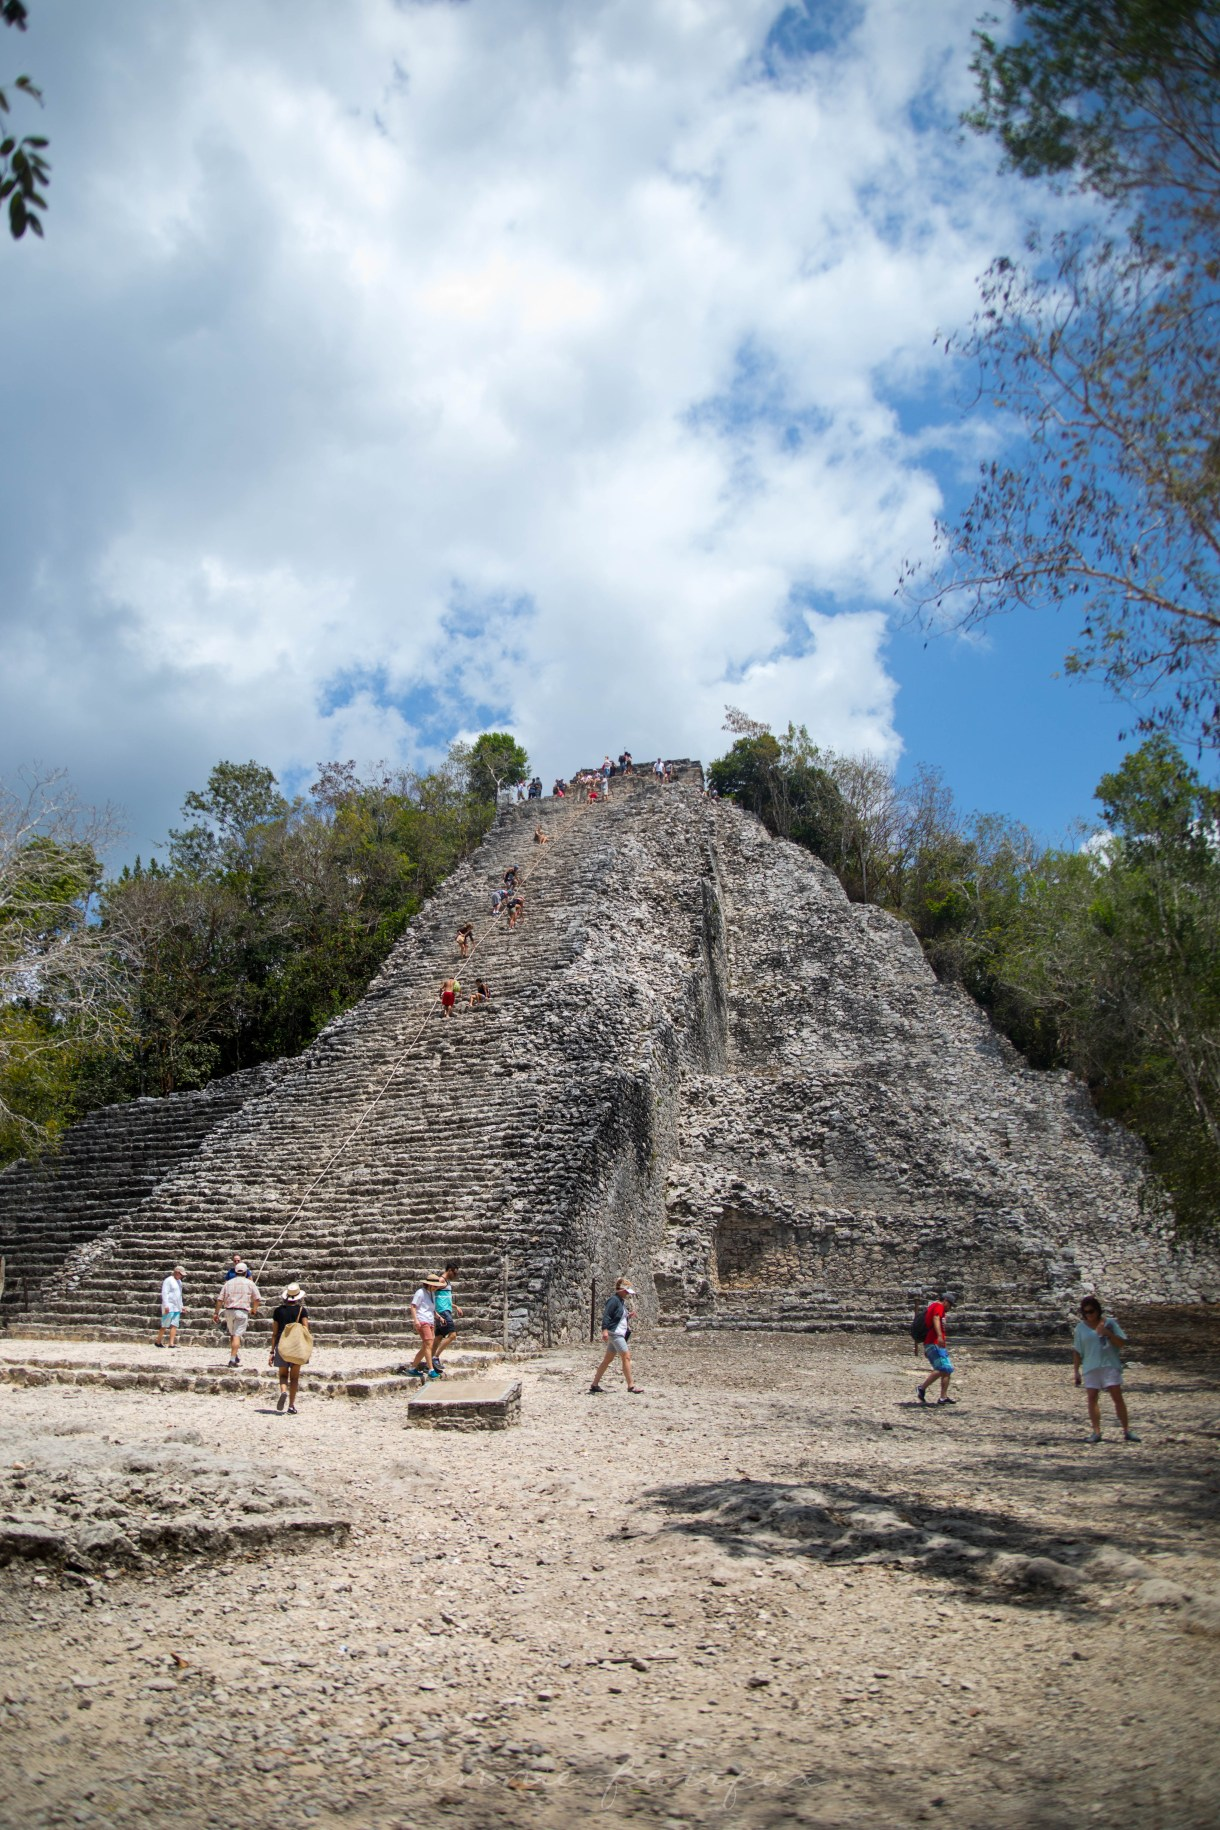 Exploring the Ancient Mayan Ruins of Cobá in Quinatana Roo, Mexico (Yucatán Peninsula)